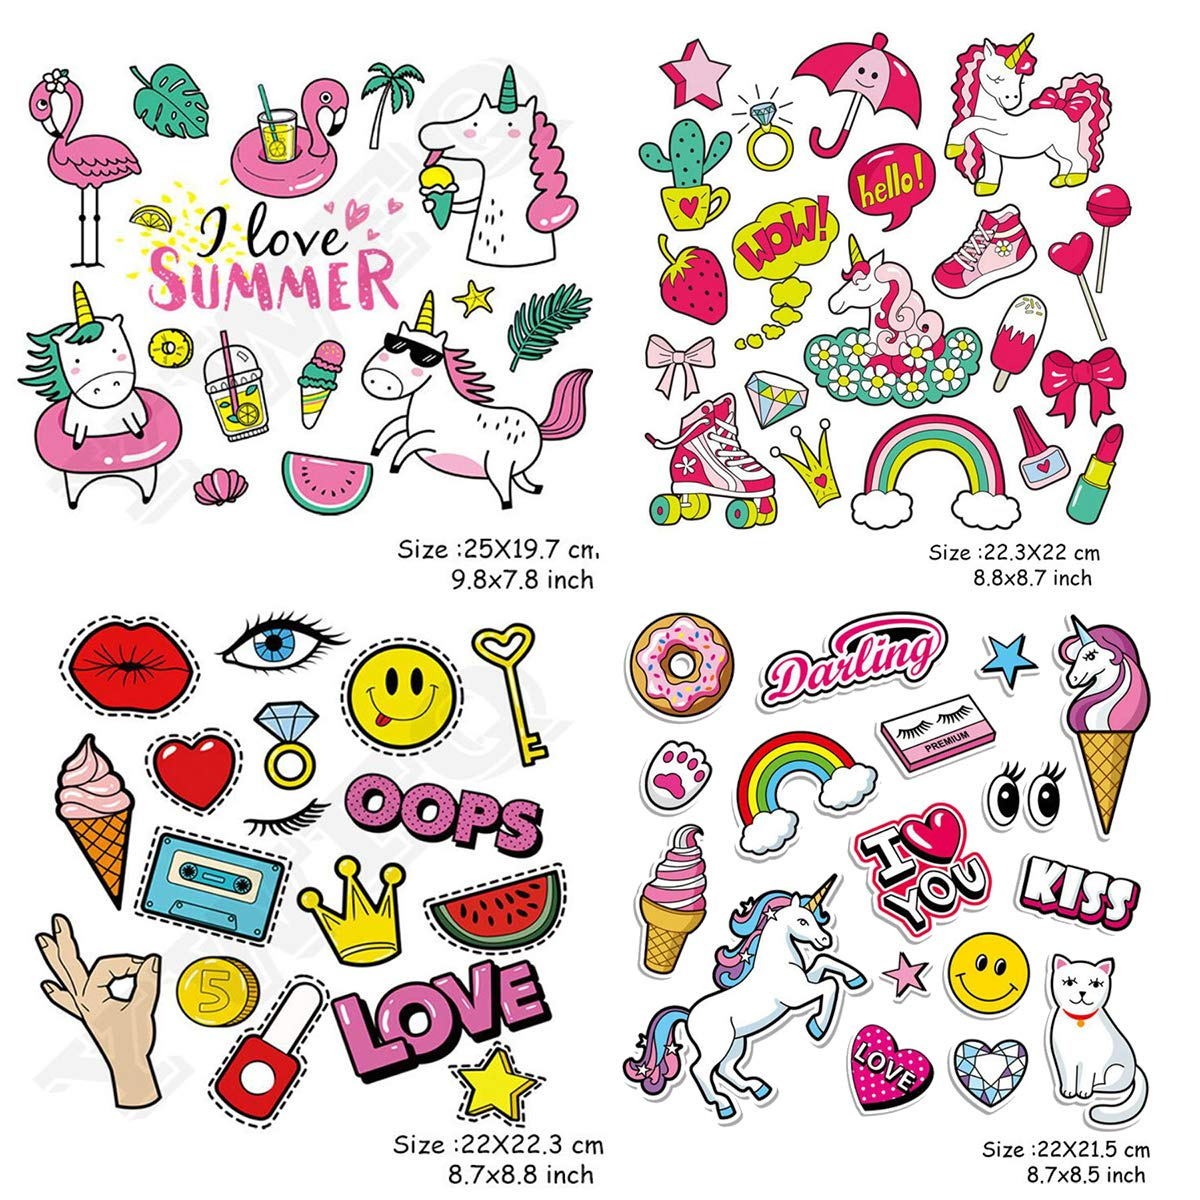 A-Level Washable DIY Brithday Party Appliques Kids Iron On Patches 5 Sets MWOOT Unicorn Cartoon Love Kiss Summer Travel Heat Transfer Stickers for Clothing,T-Shirt,Jeans,Bags